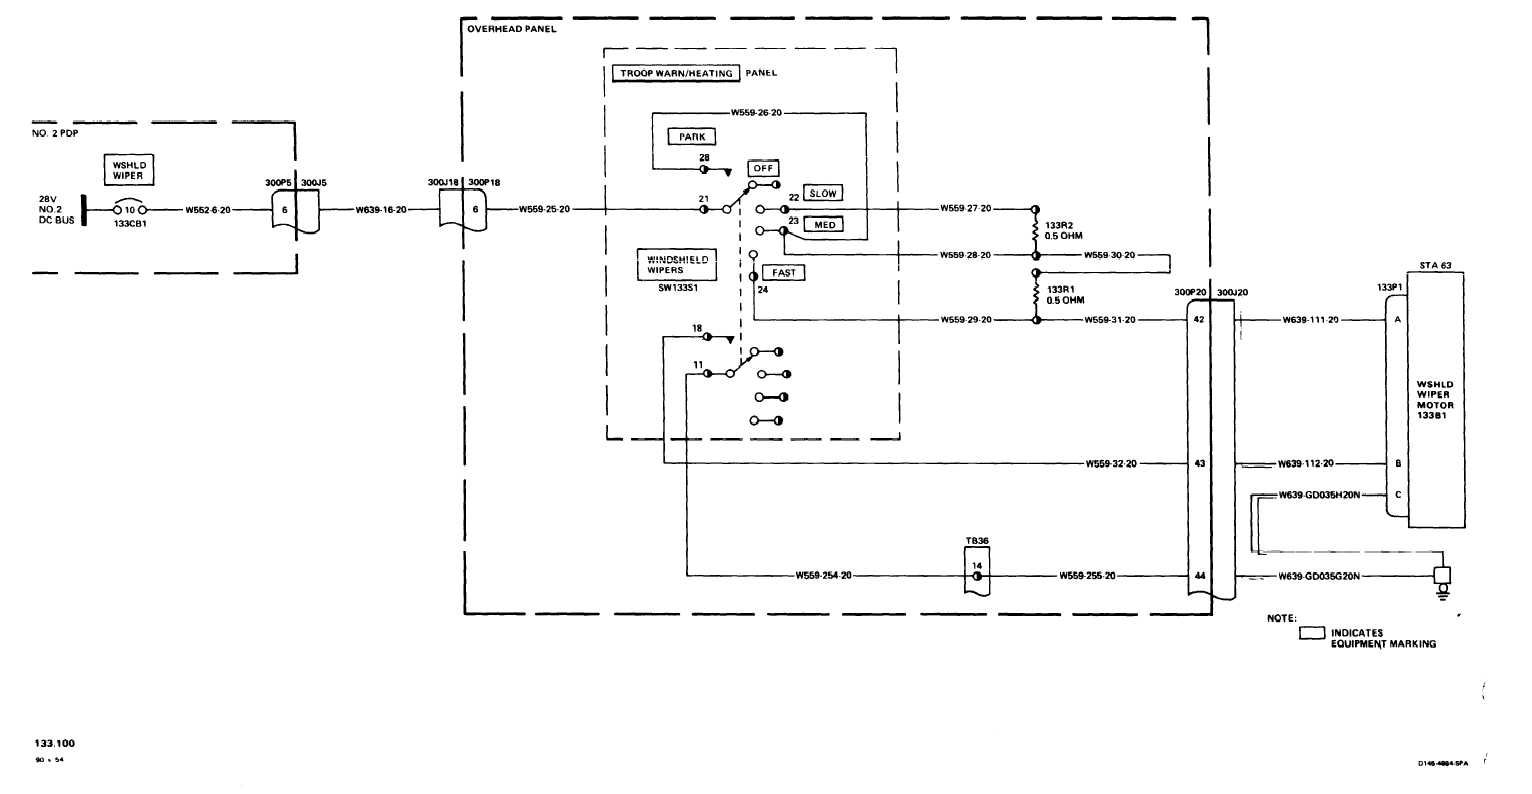 hight resolution of 1999 gmc wiper wiring diagram wiring diagram centre 1999 gmc wiper wiring diagram